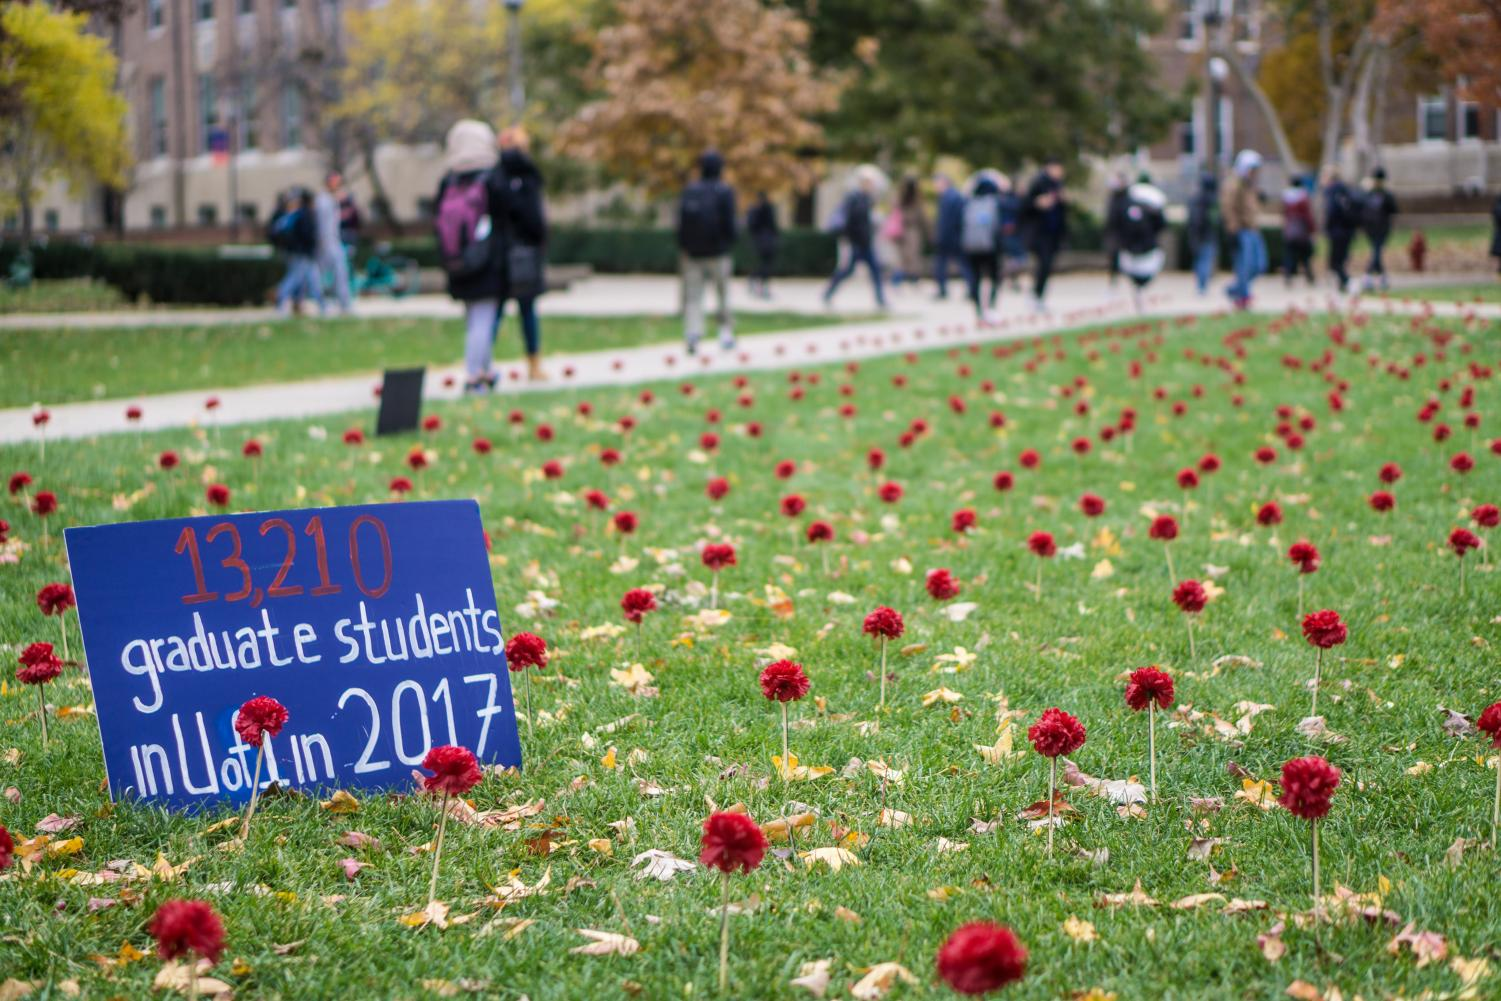 Carnations+and+signs+set+up+by+Amnesty+International+line+the+Main+Quad+to+raise+awareness+for+gun+violence+on+Thursday.+This+sign+compares+the+number+of+graduate+students+enrolled+at+the+University+to+those+affected+by+gun+violence+in+the+United+States.+